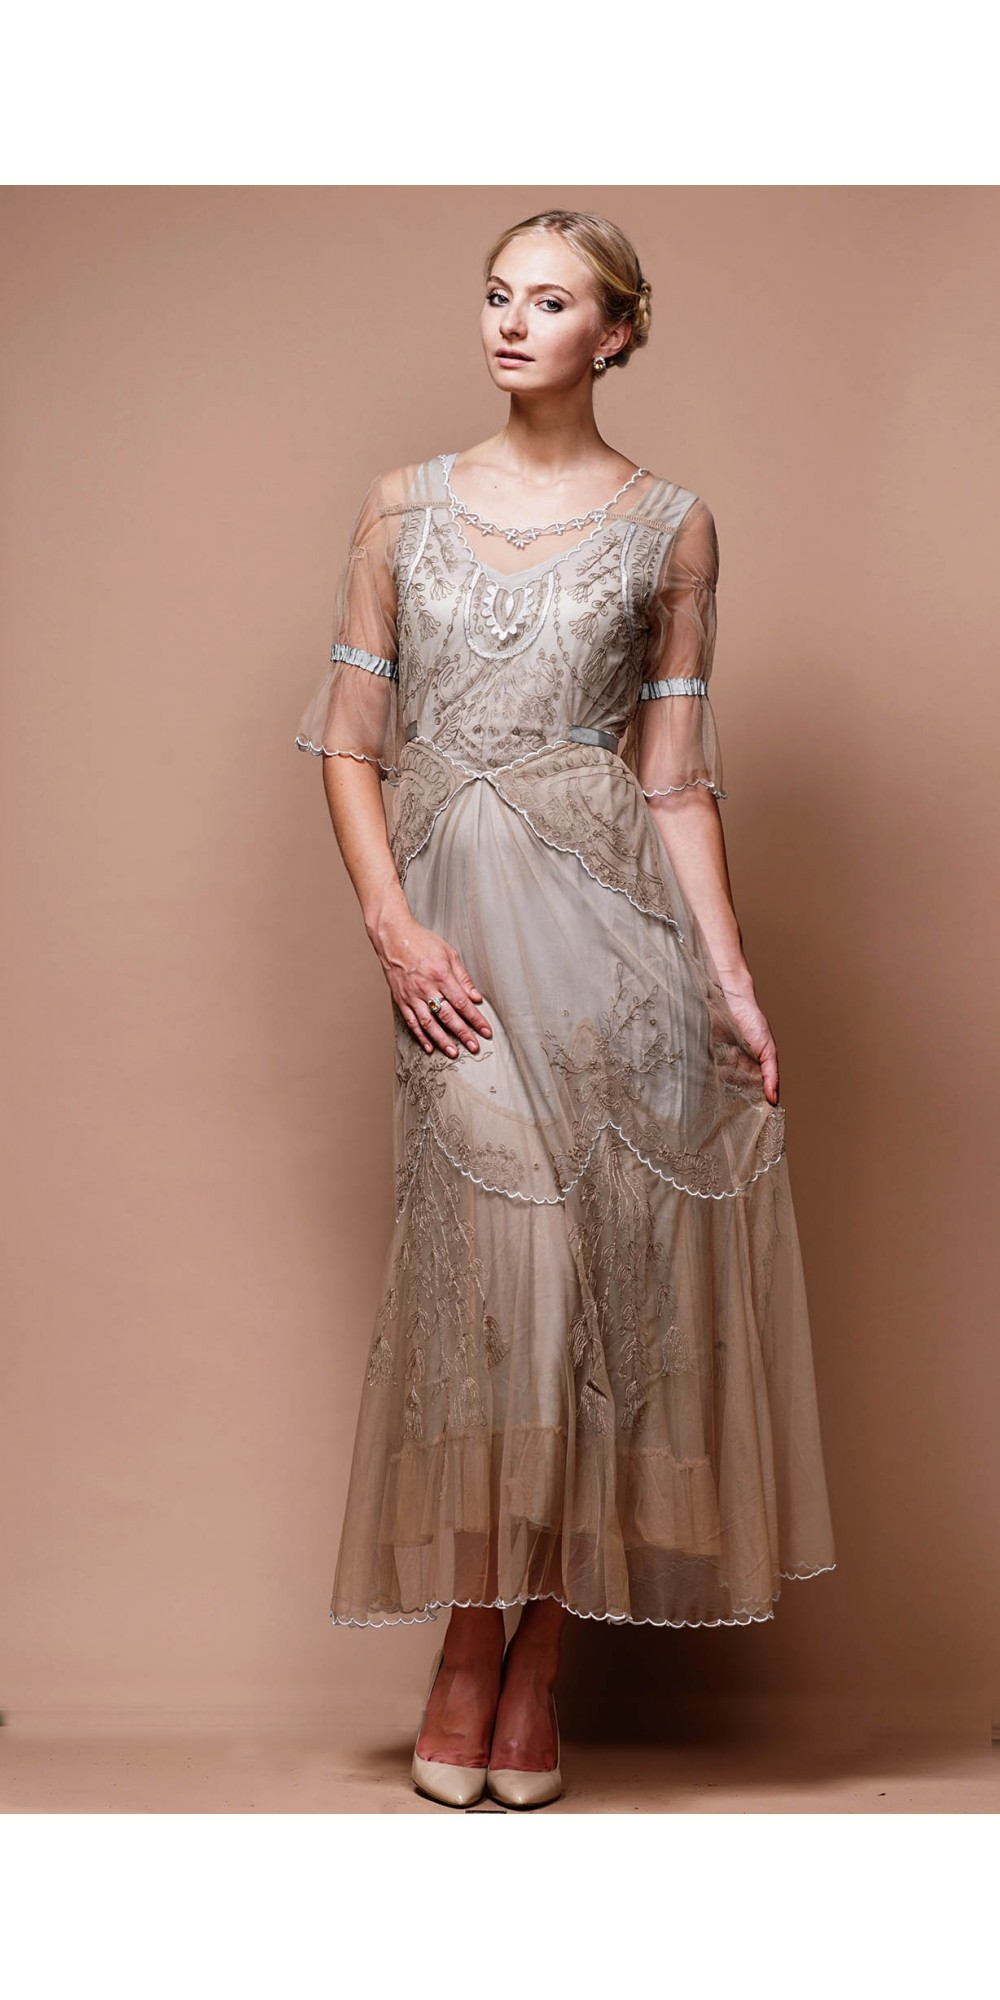 Edwardian Vintage Inspired Wedding Dress in Sand-Silver by Nataya